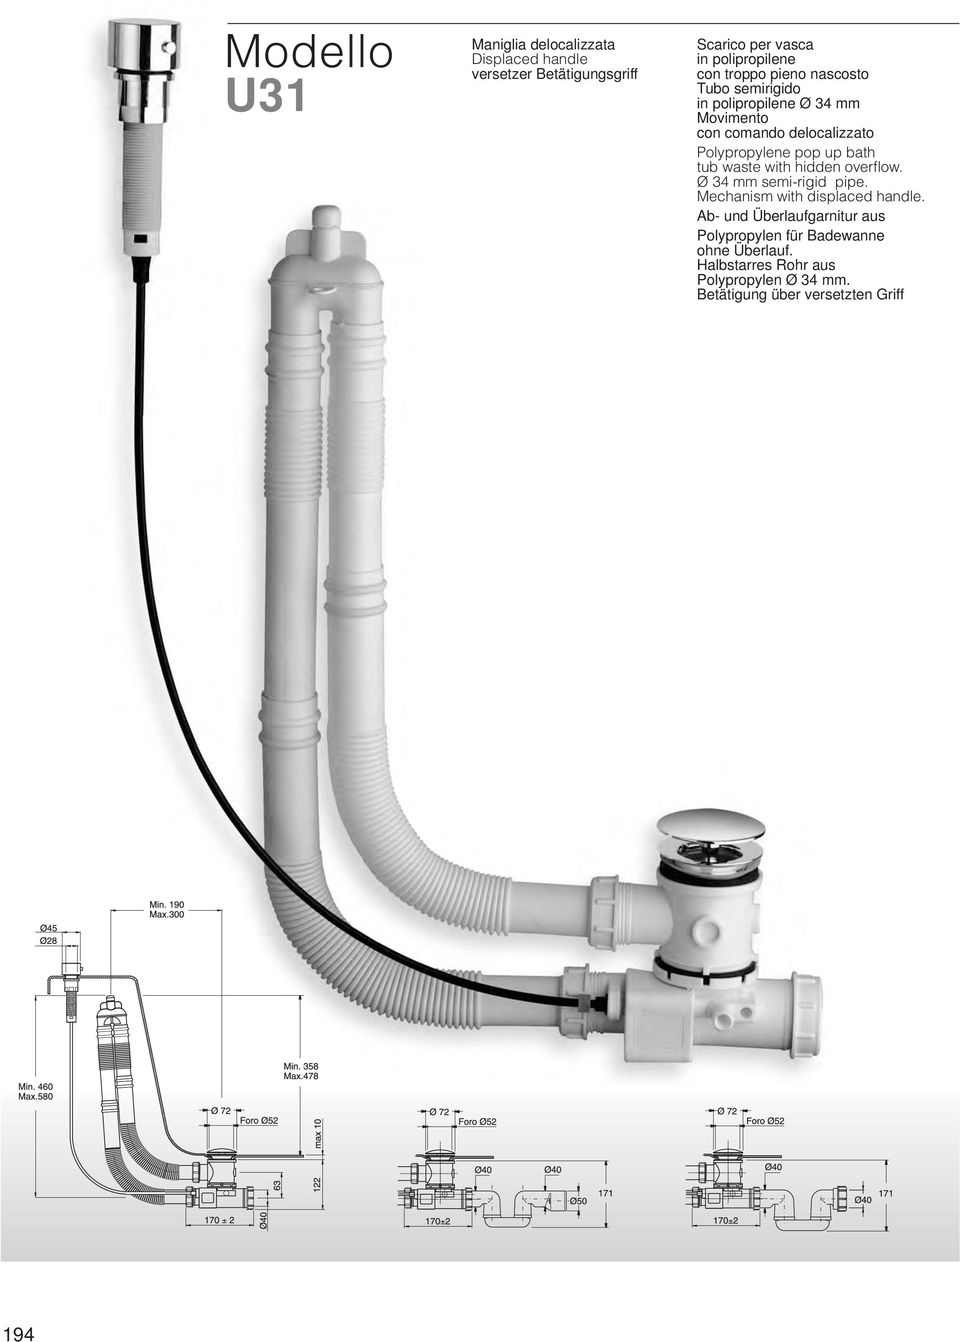 waste with hidden overflow. Ø 34 mm semi-rigid pipe. Mechanism with displaced handle.